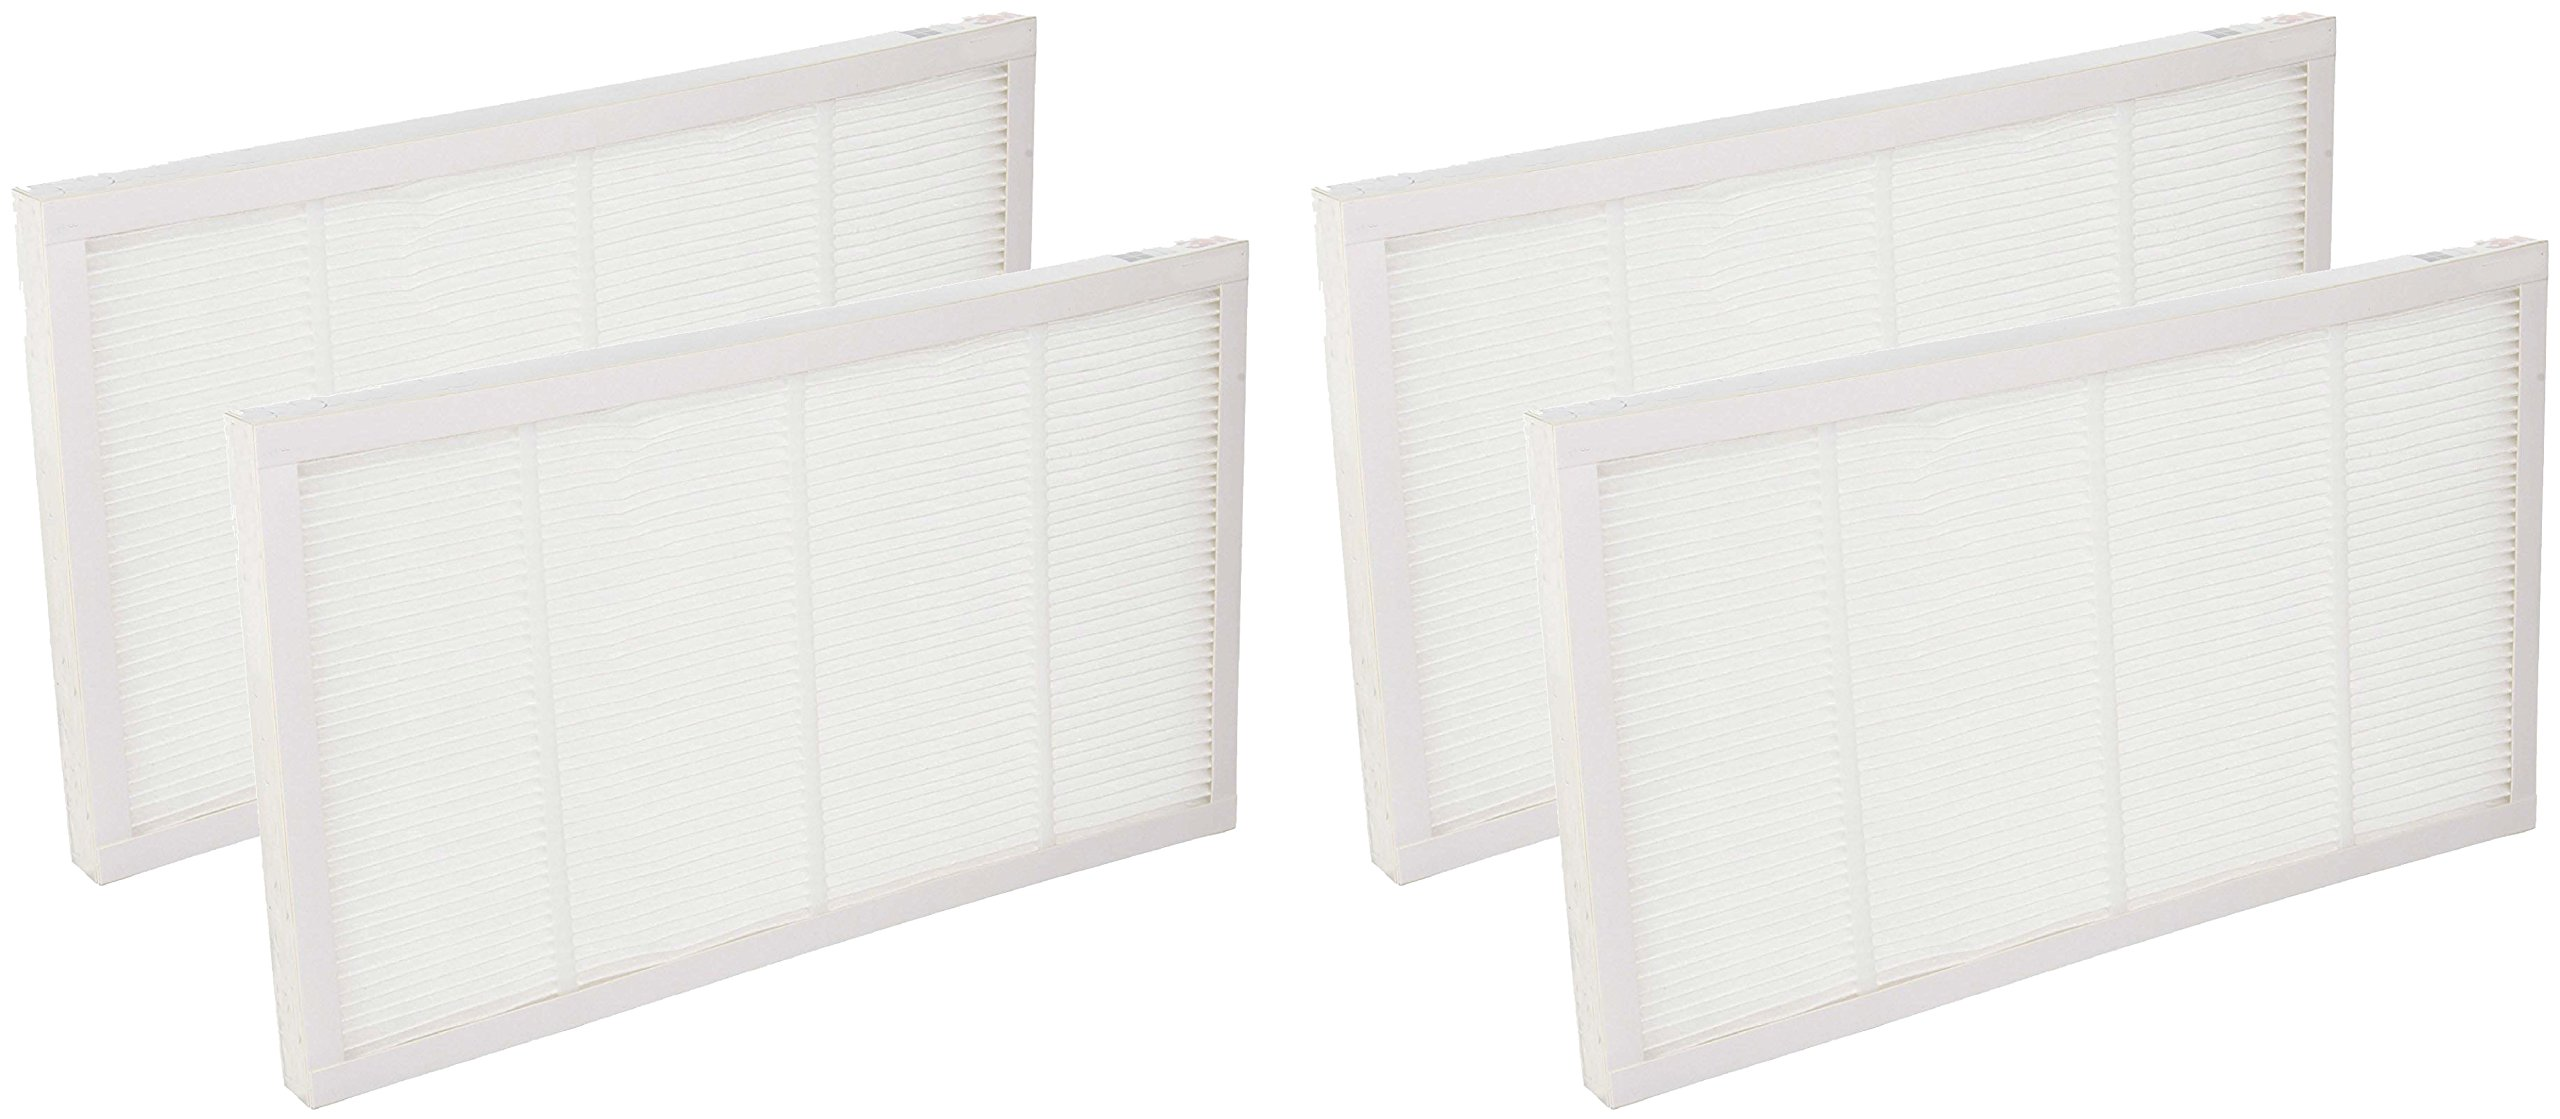 Nispira FAPF02 FAPF024 HEPA Filter Compatible with 3M Filtrete Ultra Quiet Air Cleaning Purifiers Model FAP02 FAP01-RMS and FAP02-RMS - 4 Packs